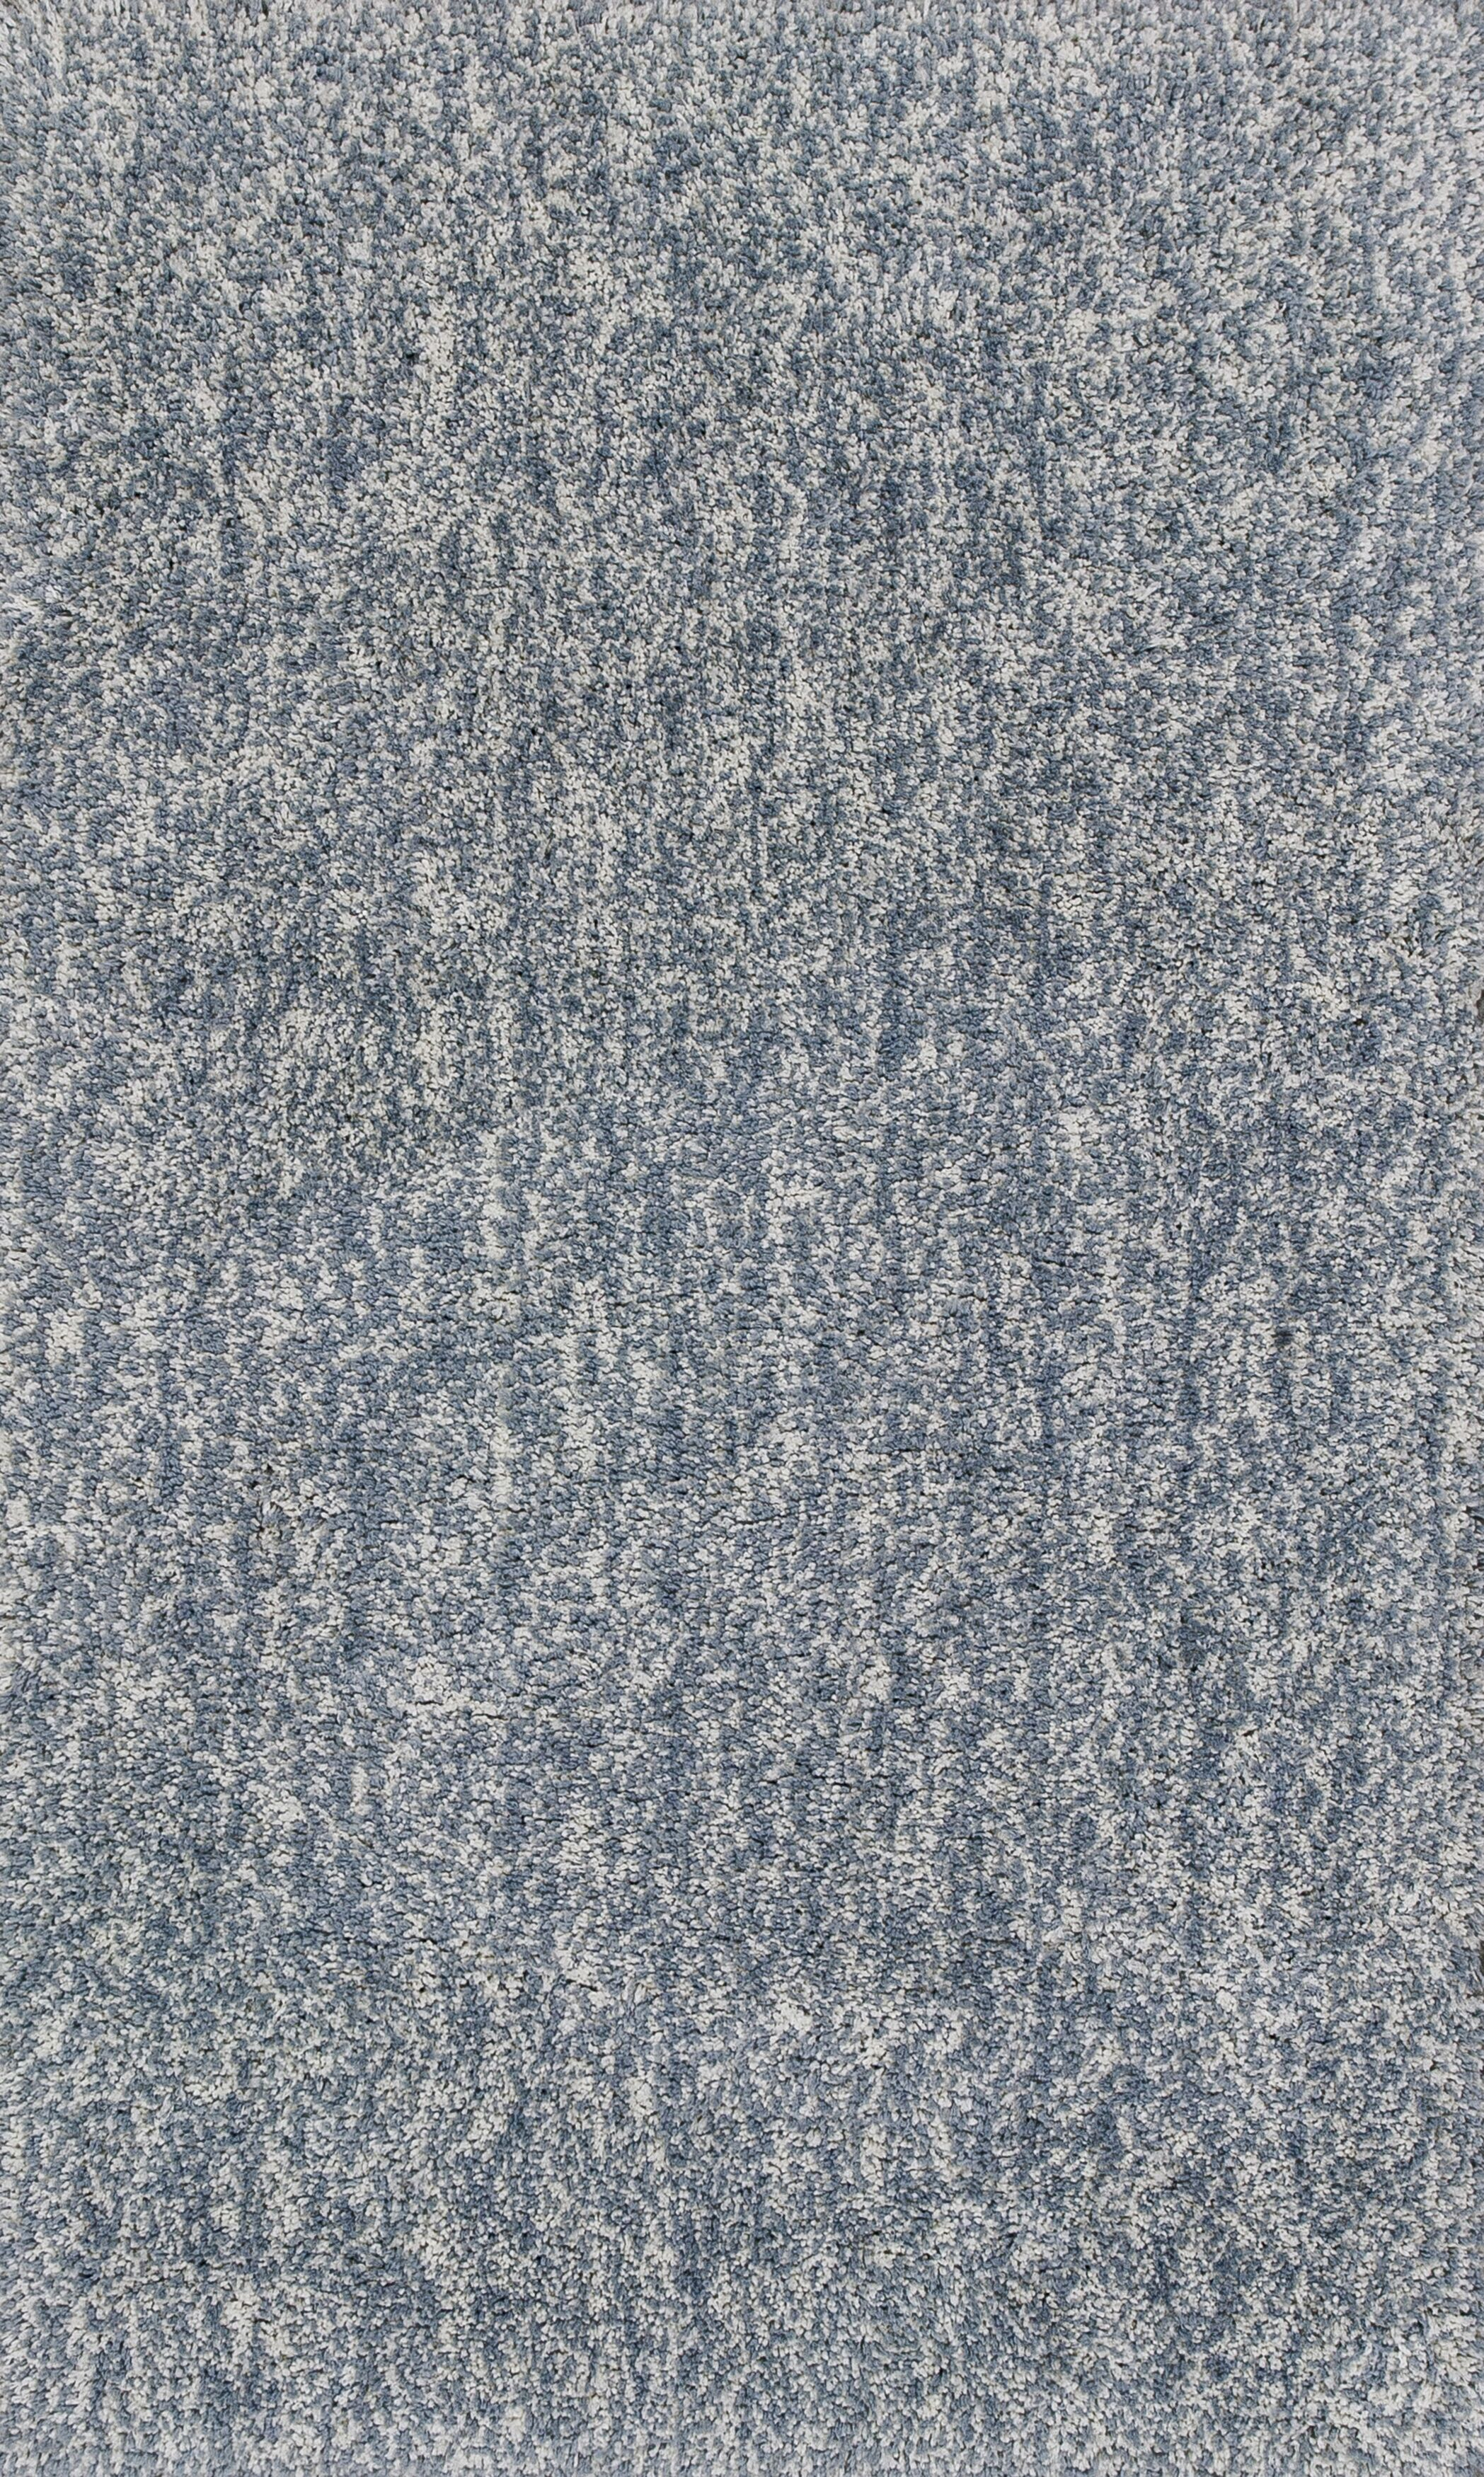 Bouvier Hand-Woven Slate Area Rug Rug Size: Rectangle 8' x 11'